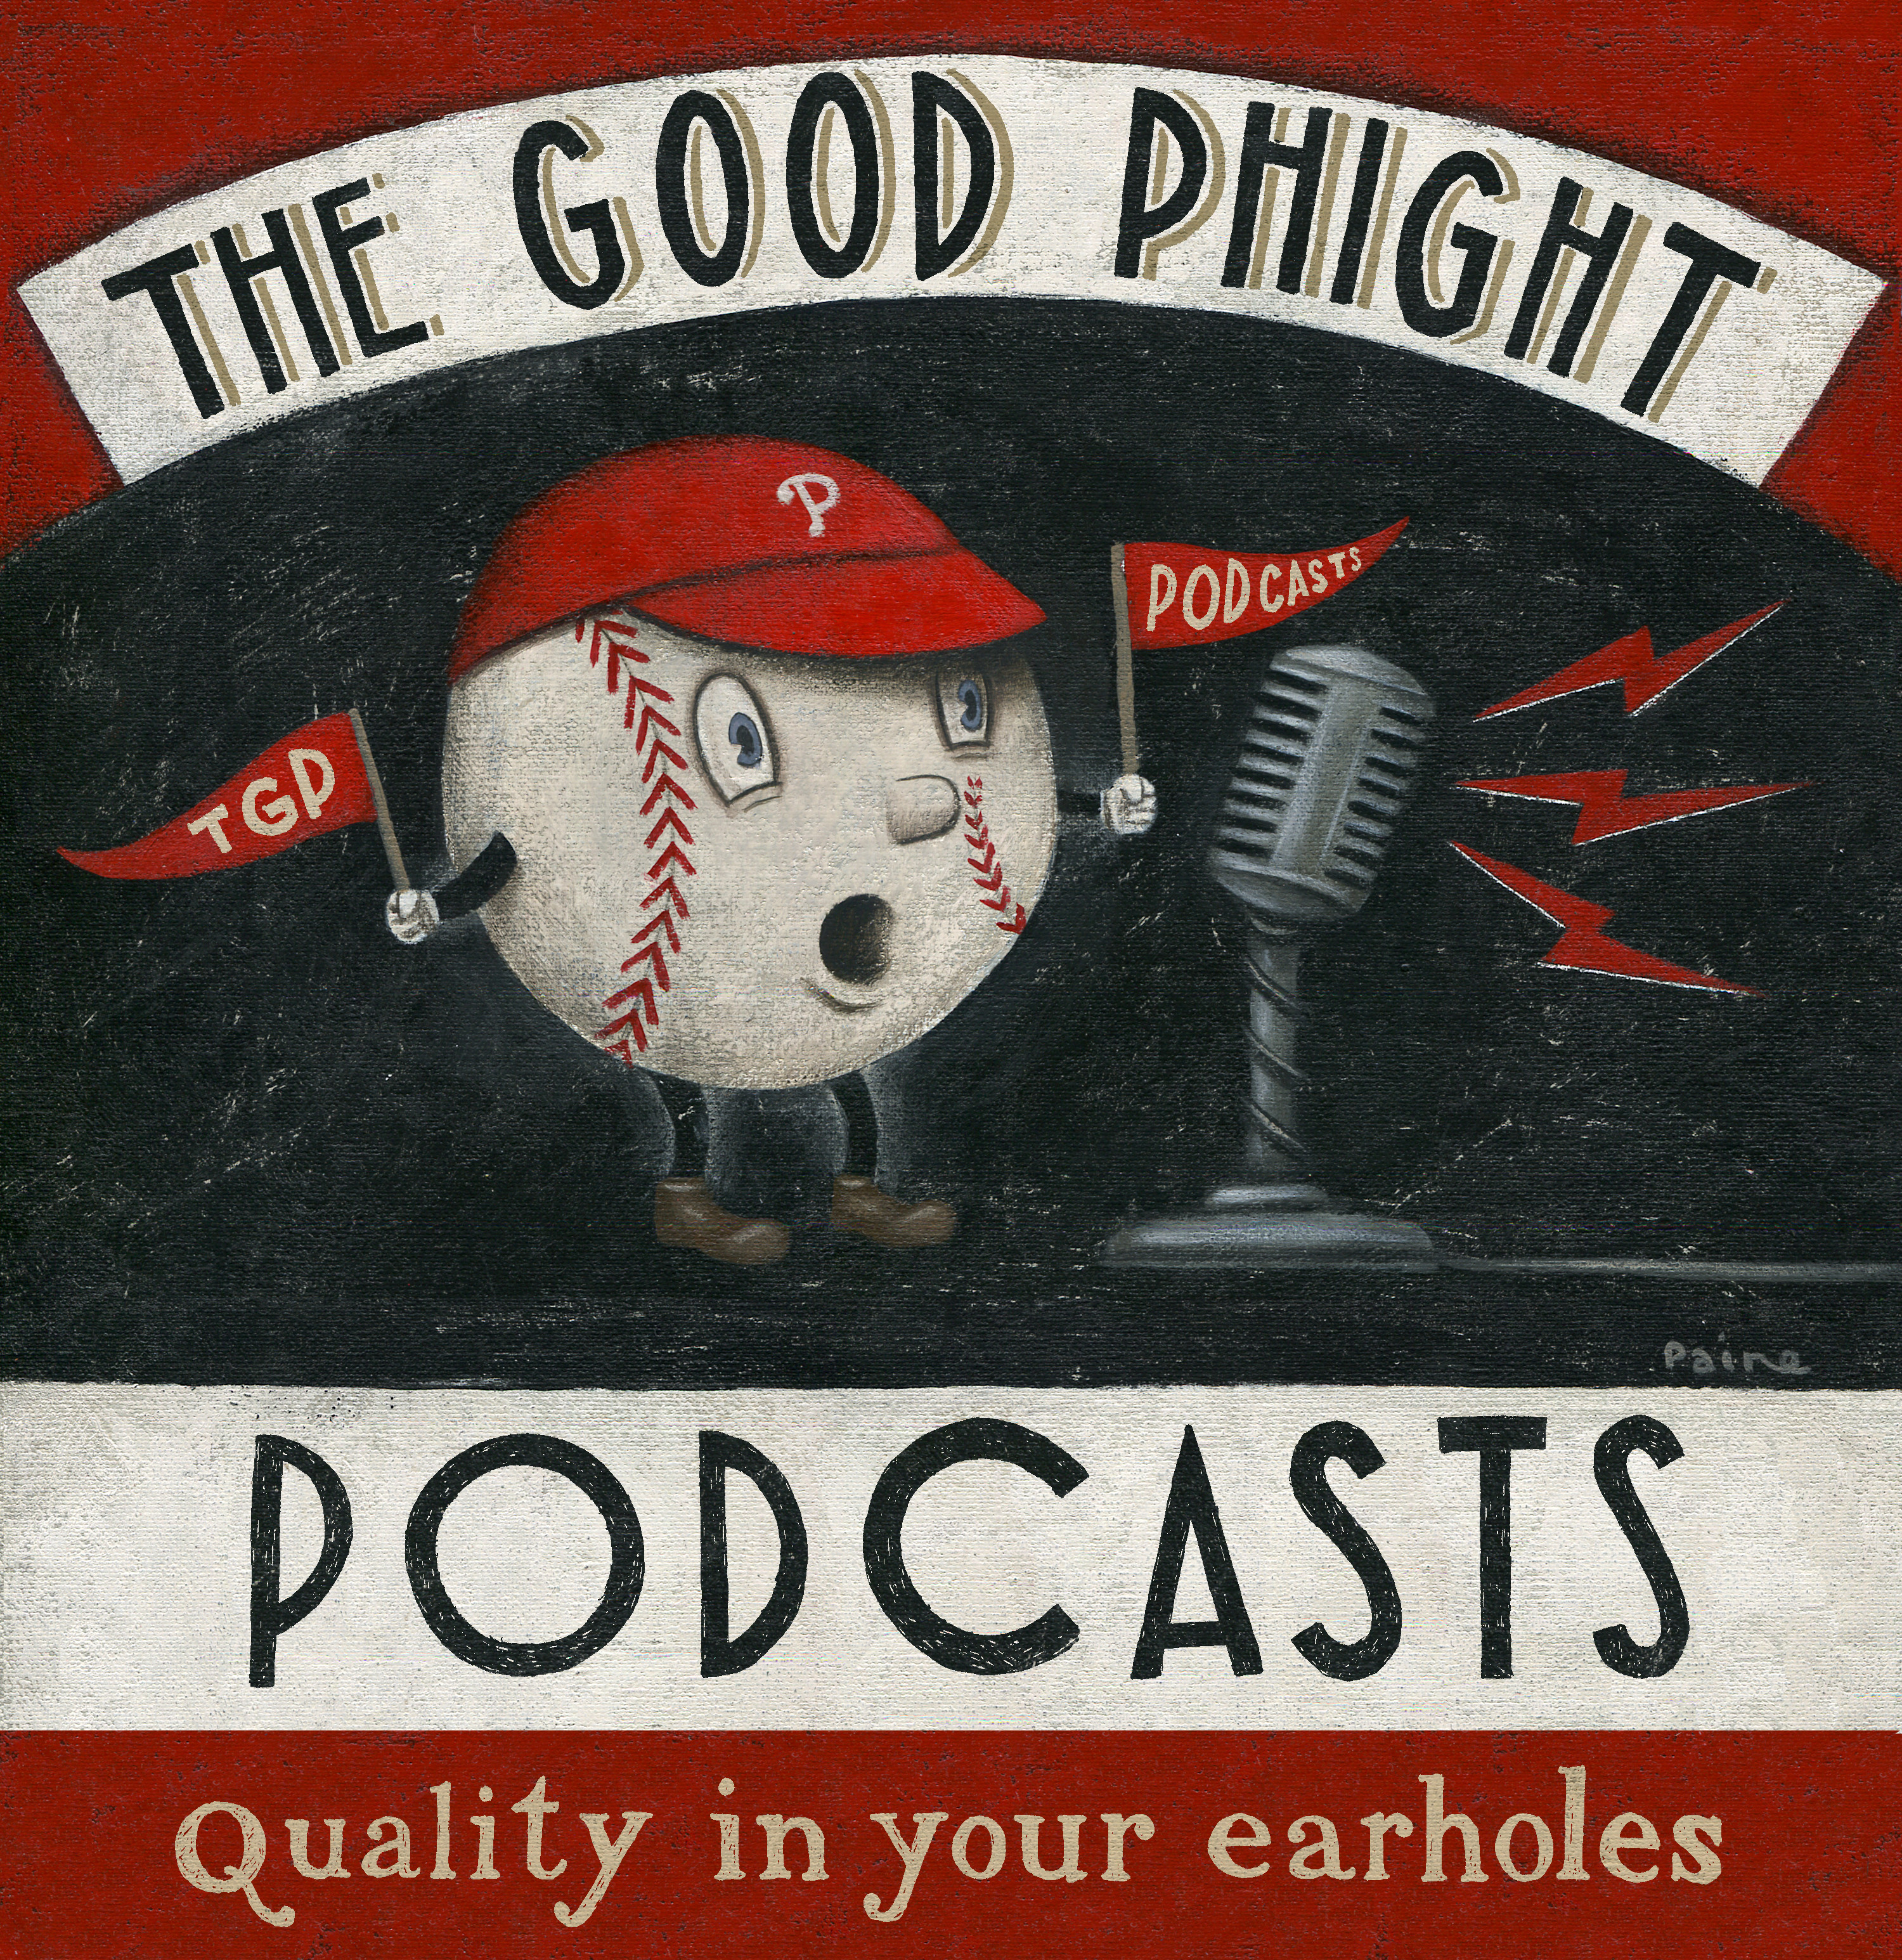 The Good Phight Podcasts